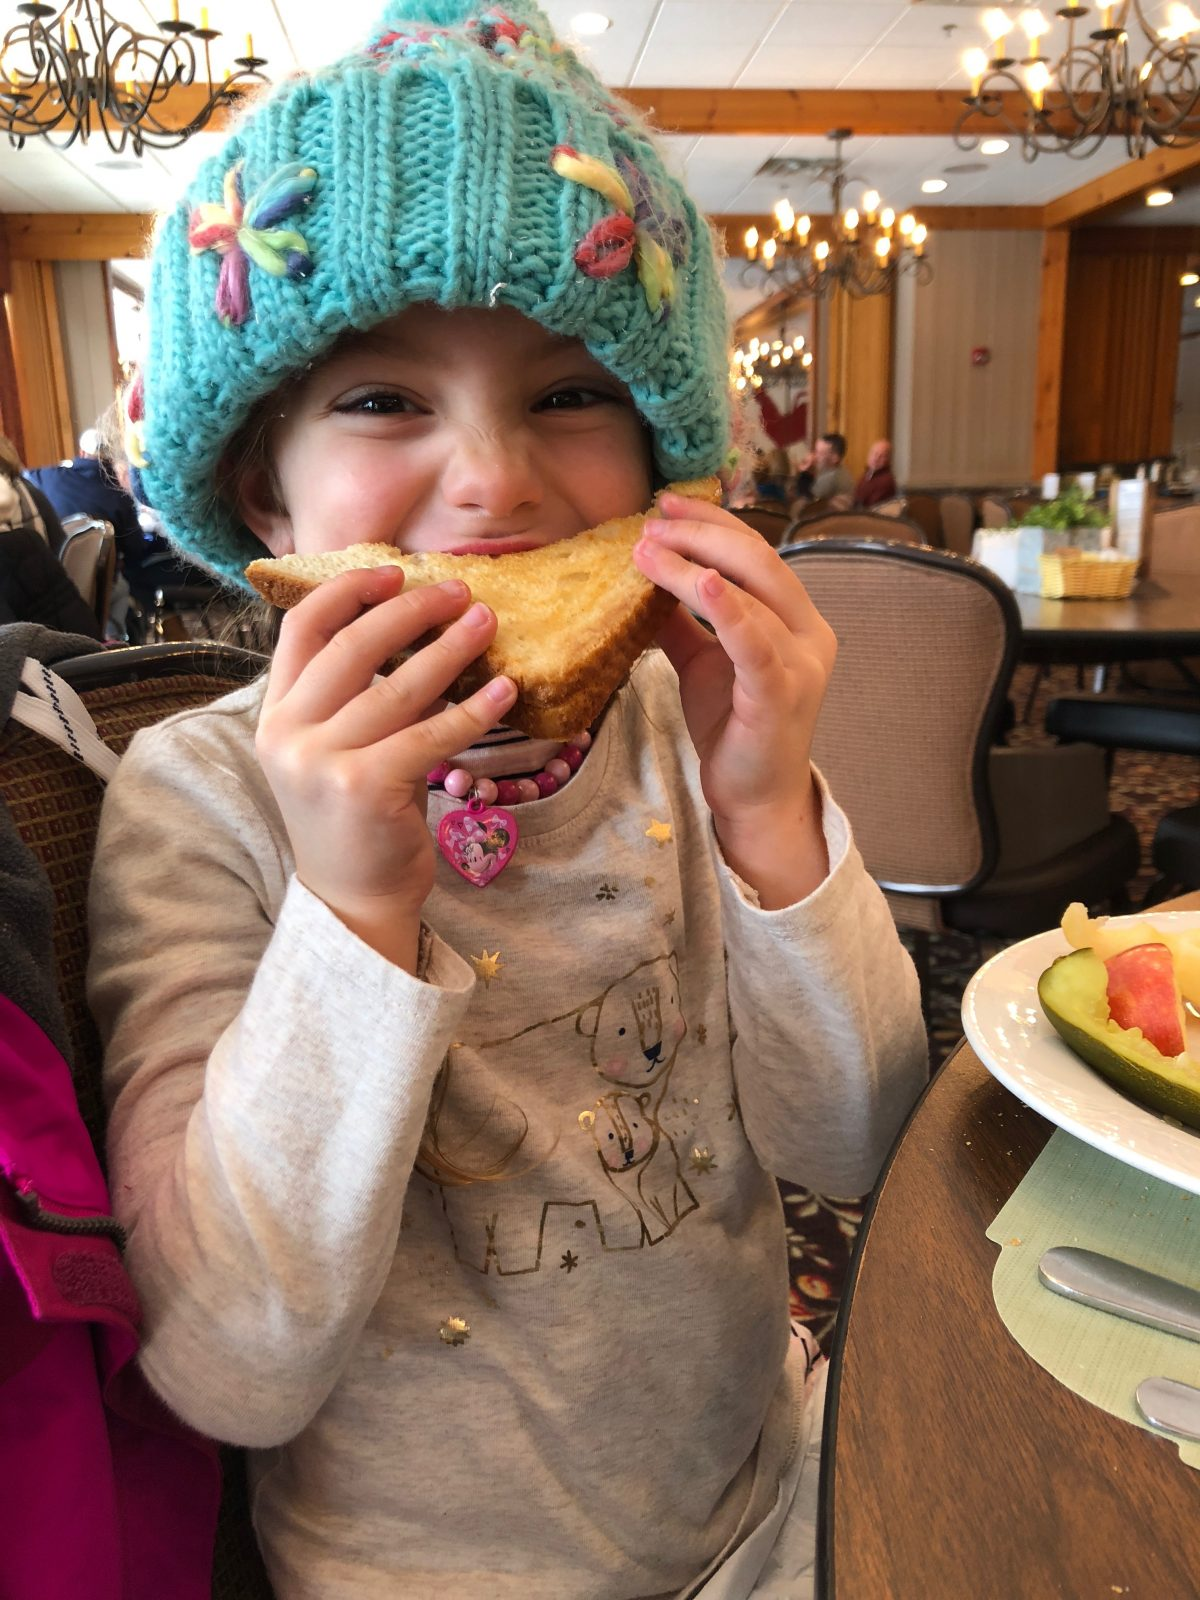 Little girl in blue winter hat eating a grilled cheese at Woodloch Pines Resort in Pocono Mountains